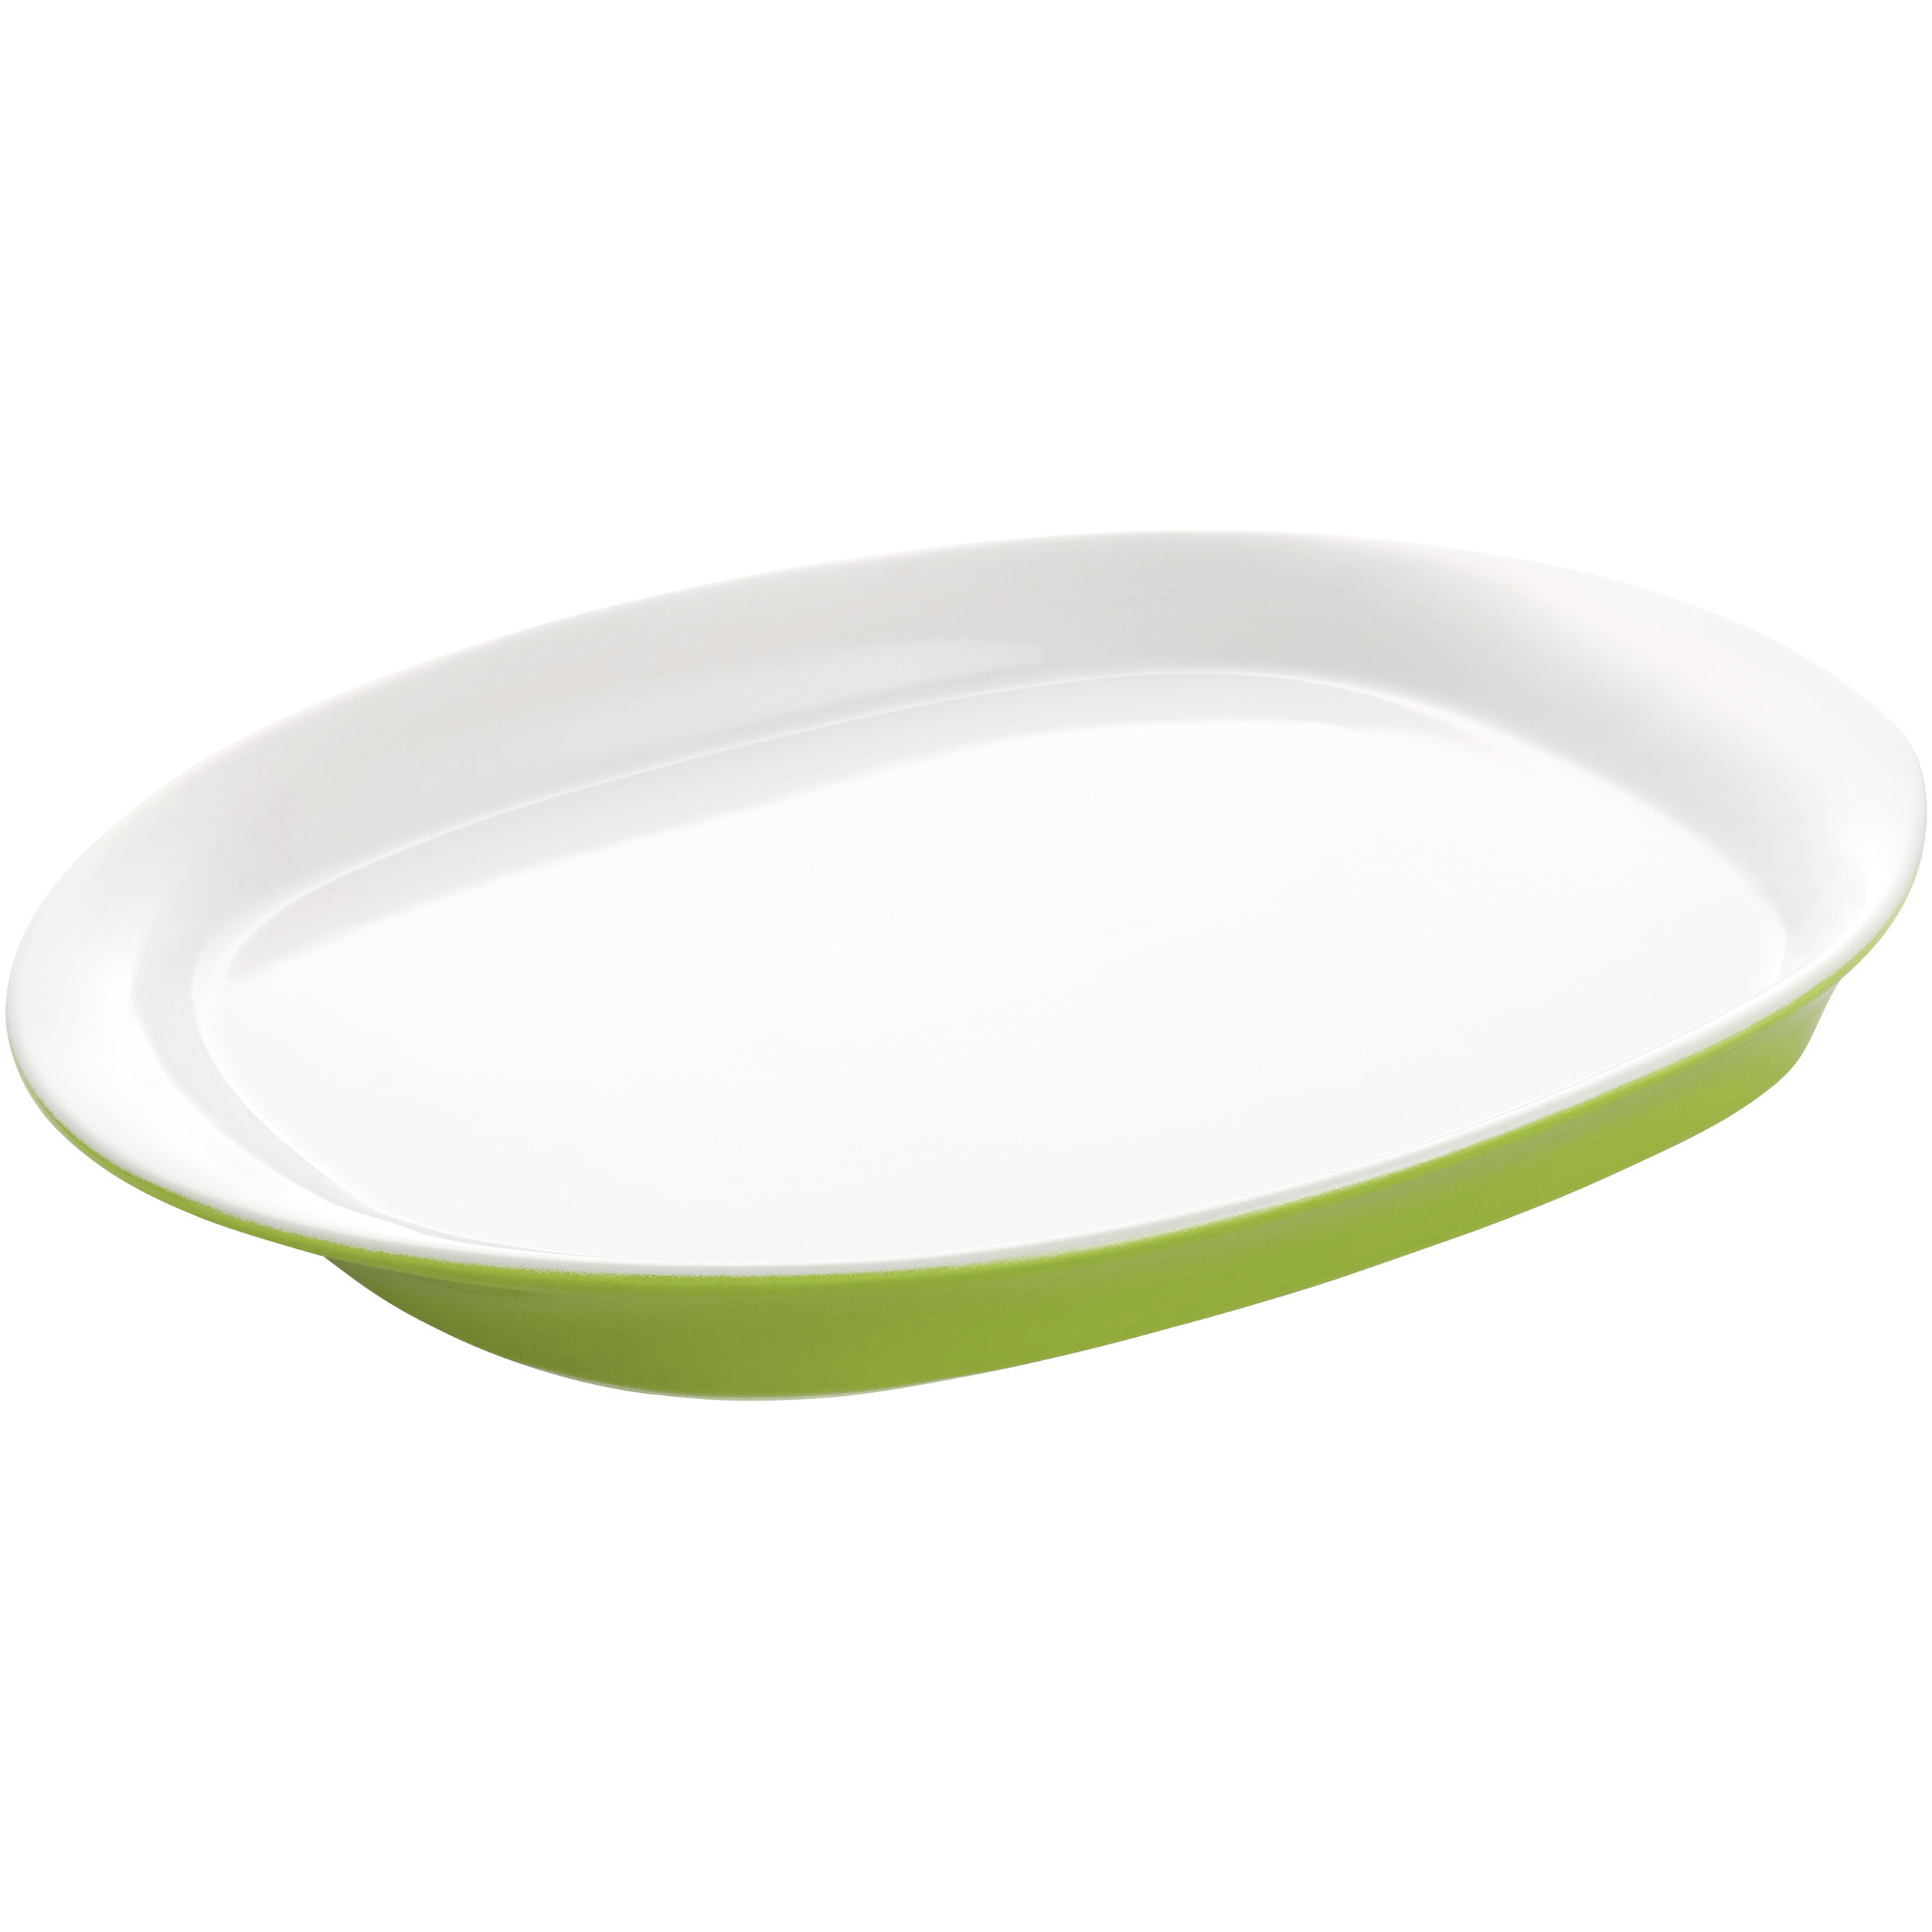 Rachael Ray Round and Square Collection Green Oval Serving Platter, 14 Inch